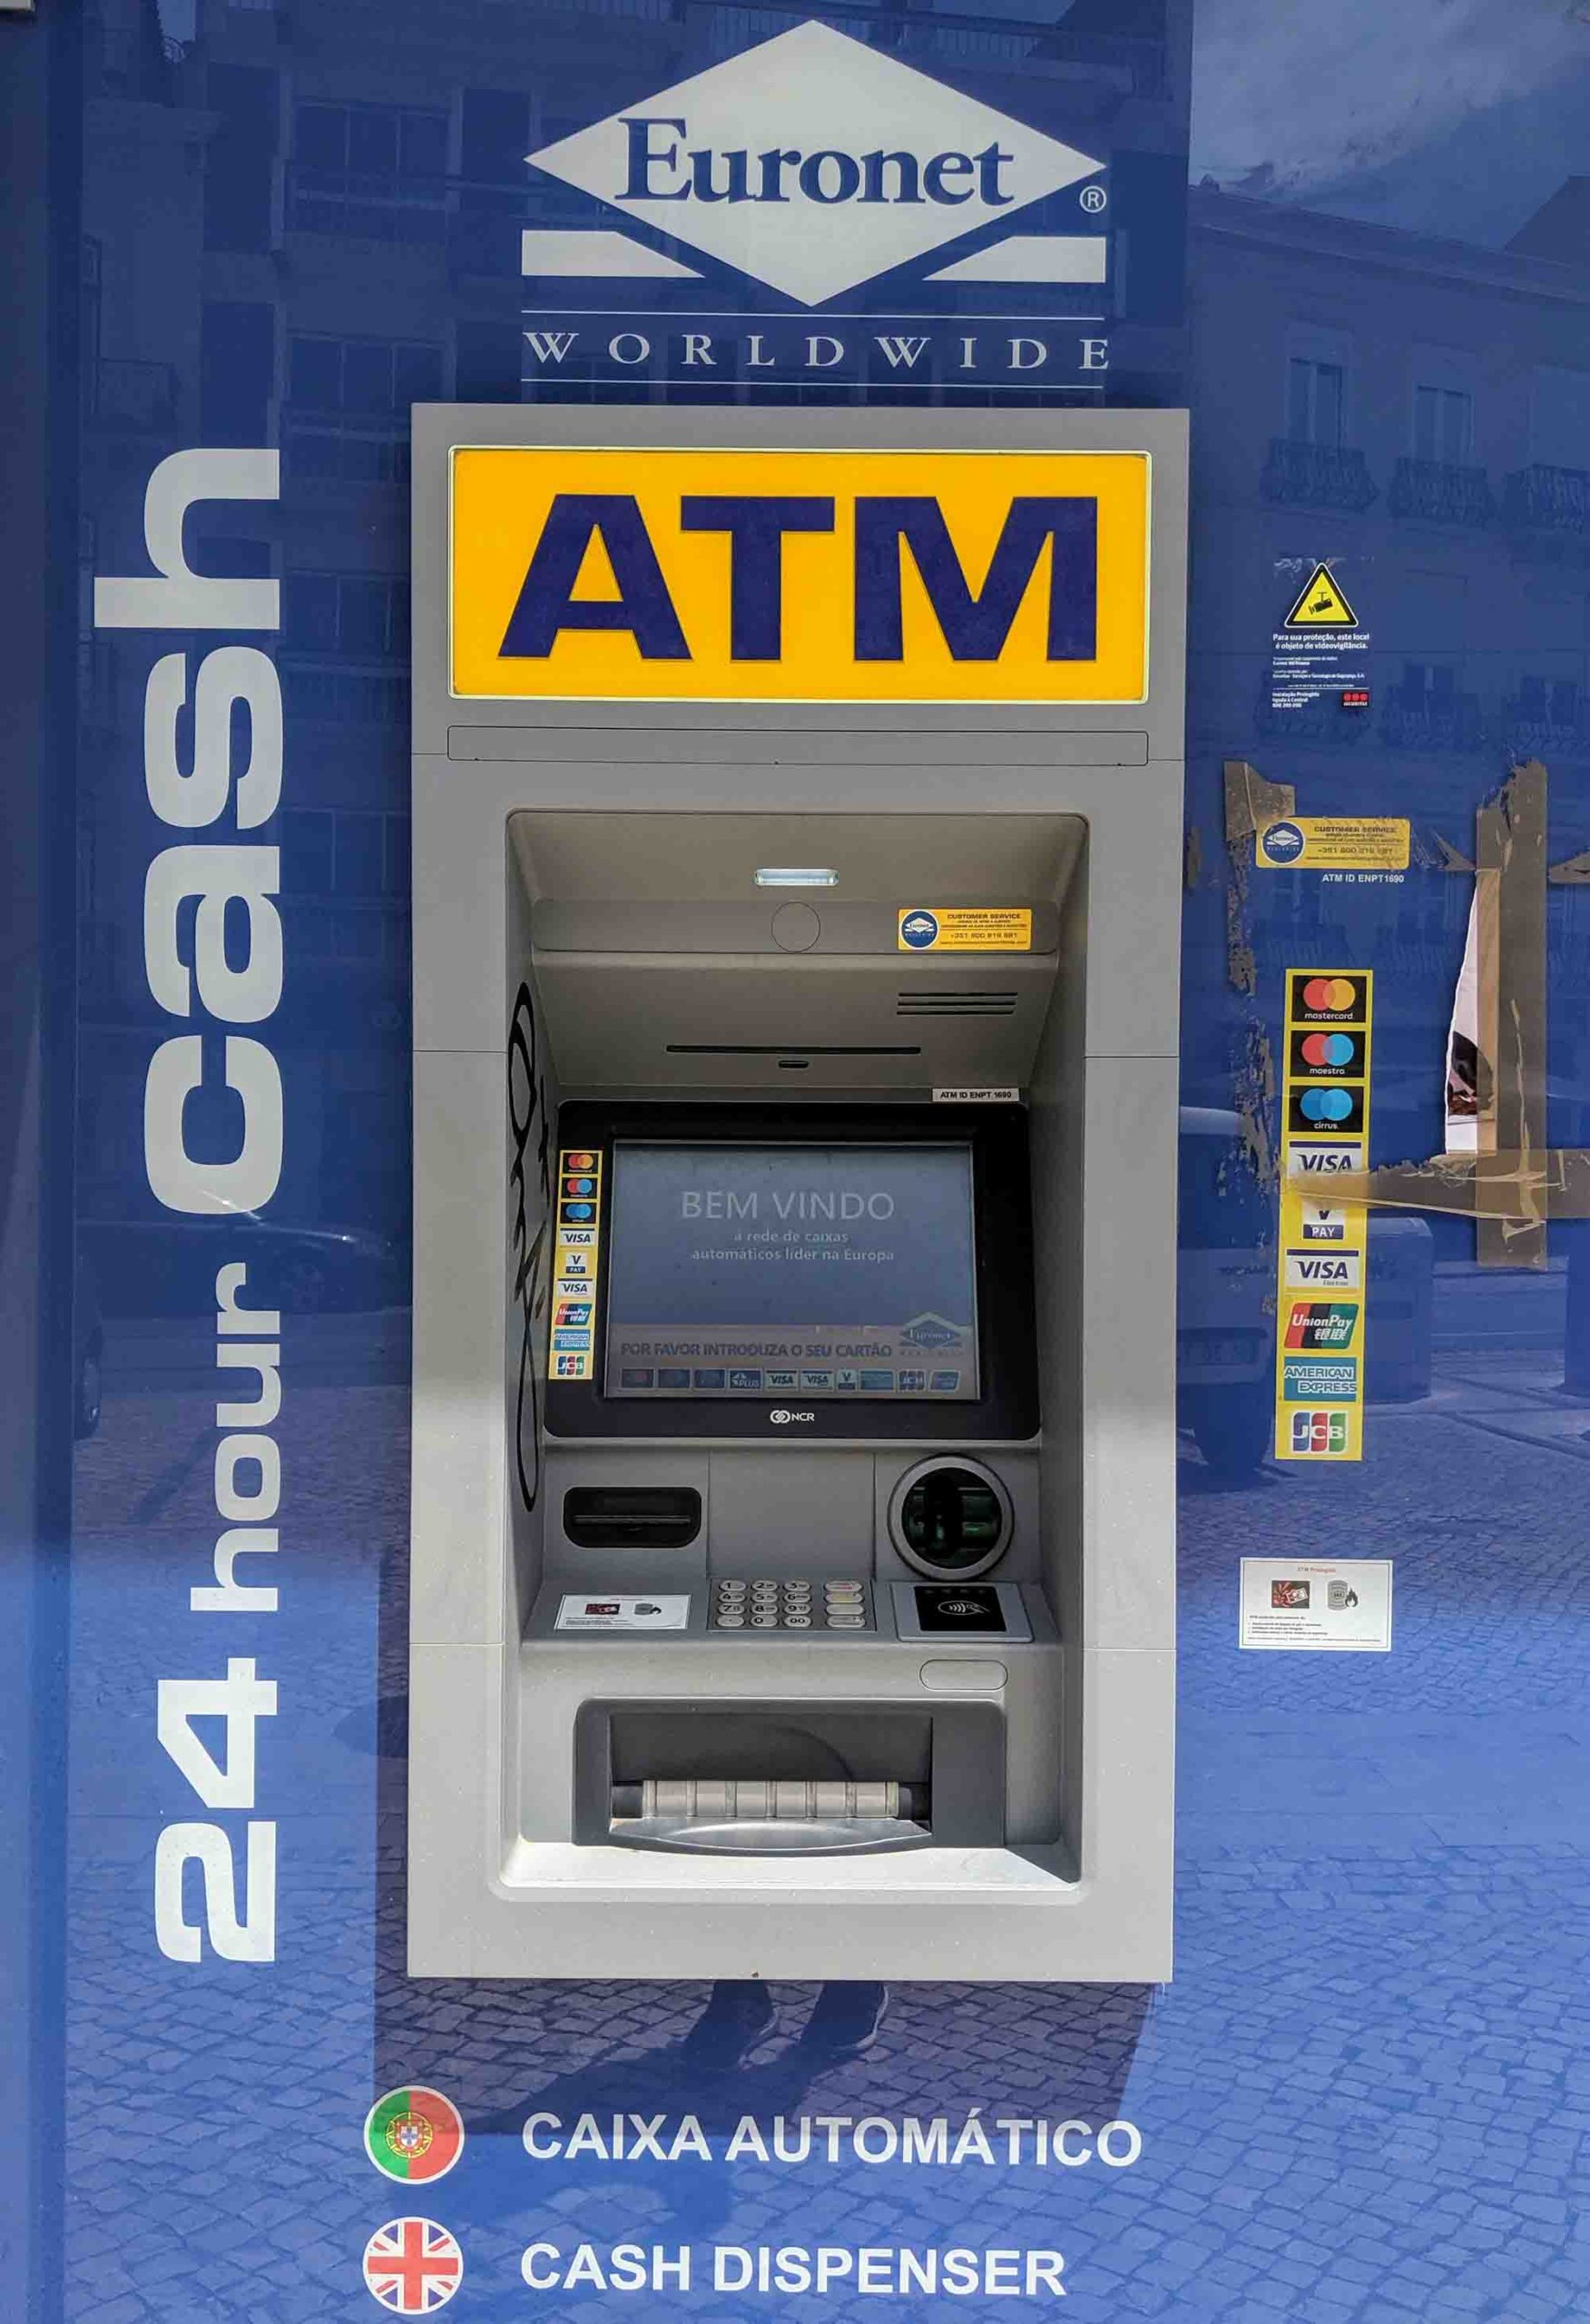 Euronet ATMs